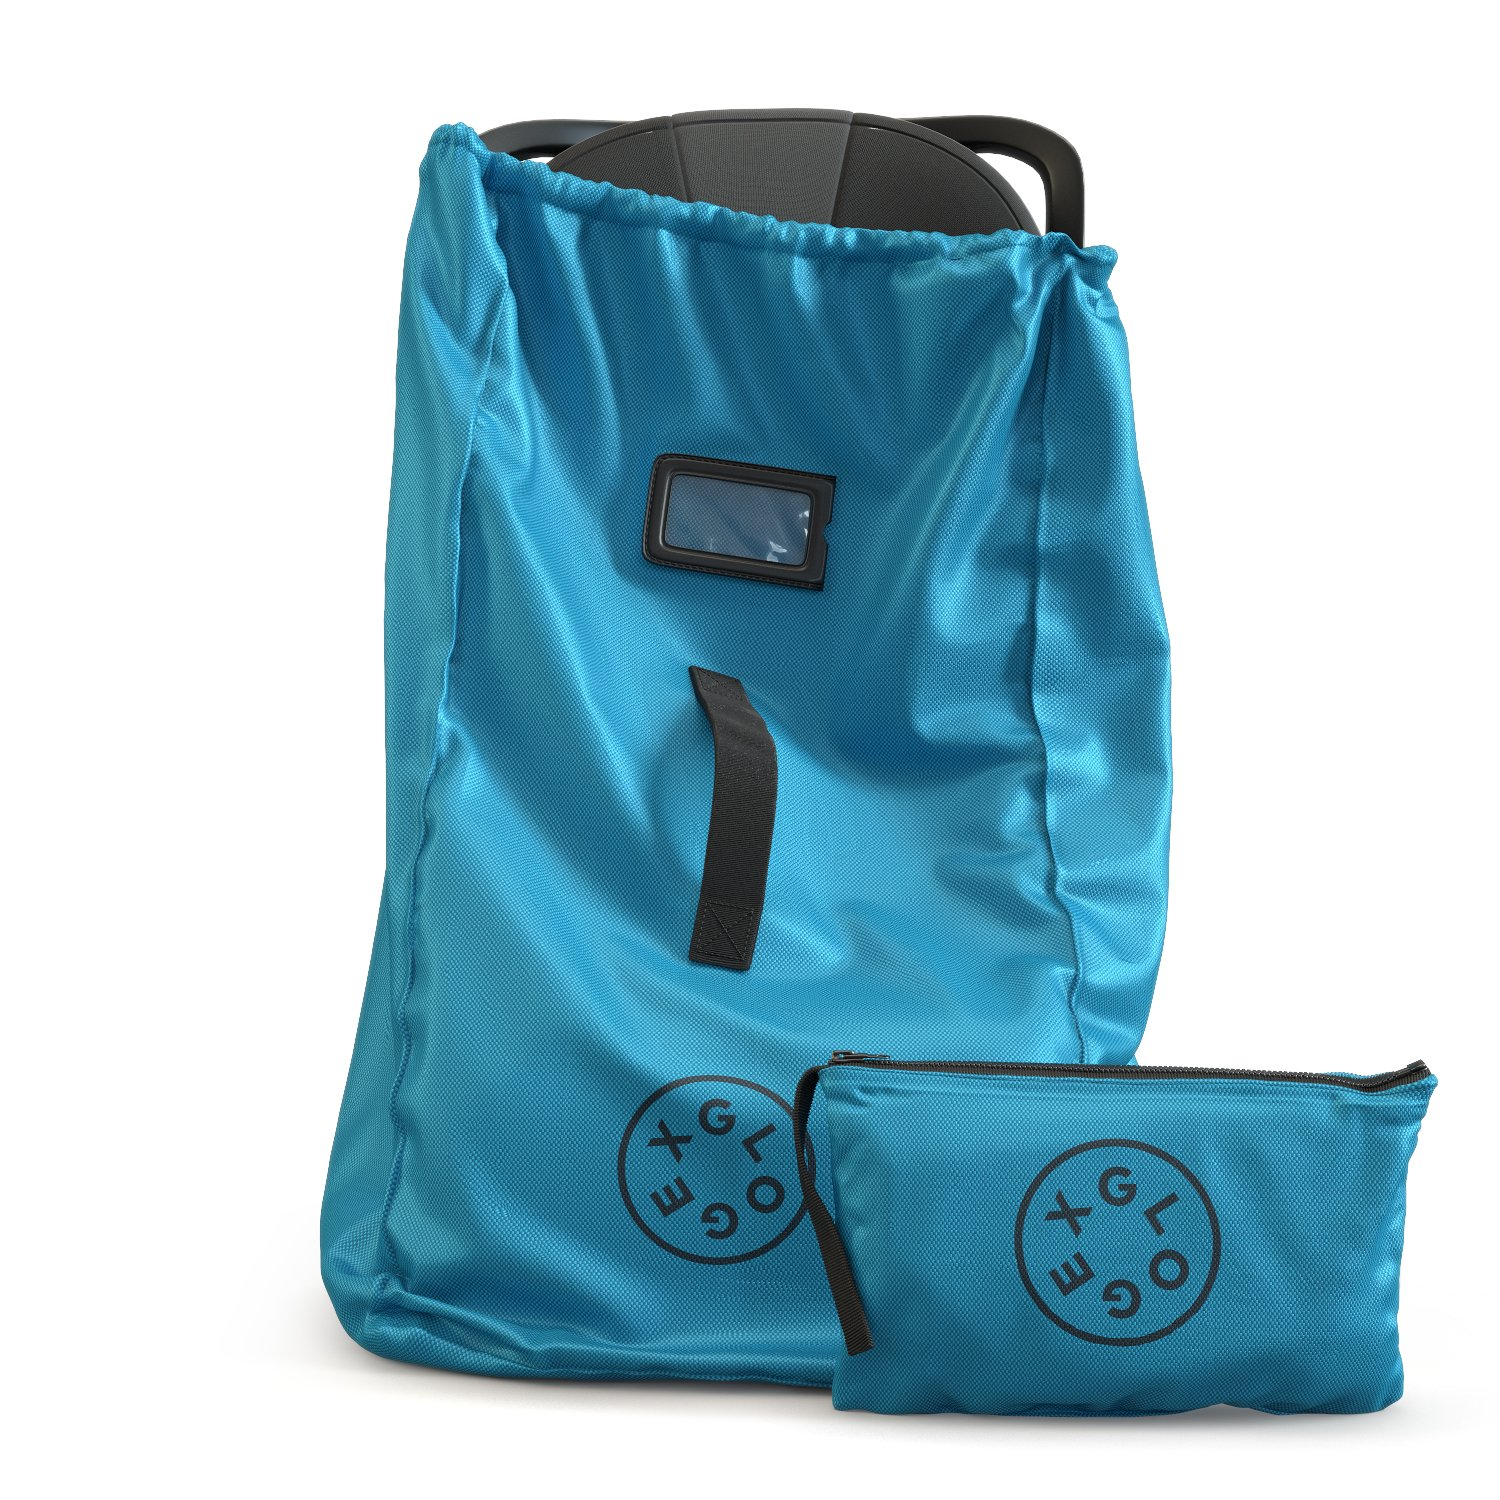 Amazon Com Glogex The Stroller Bag For Airplane